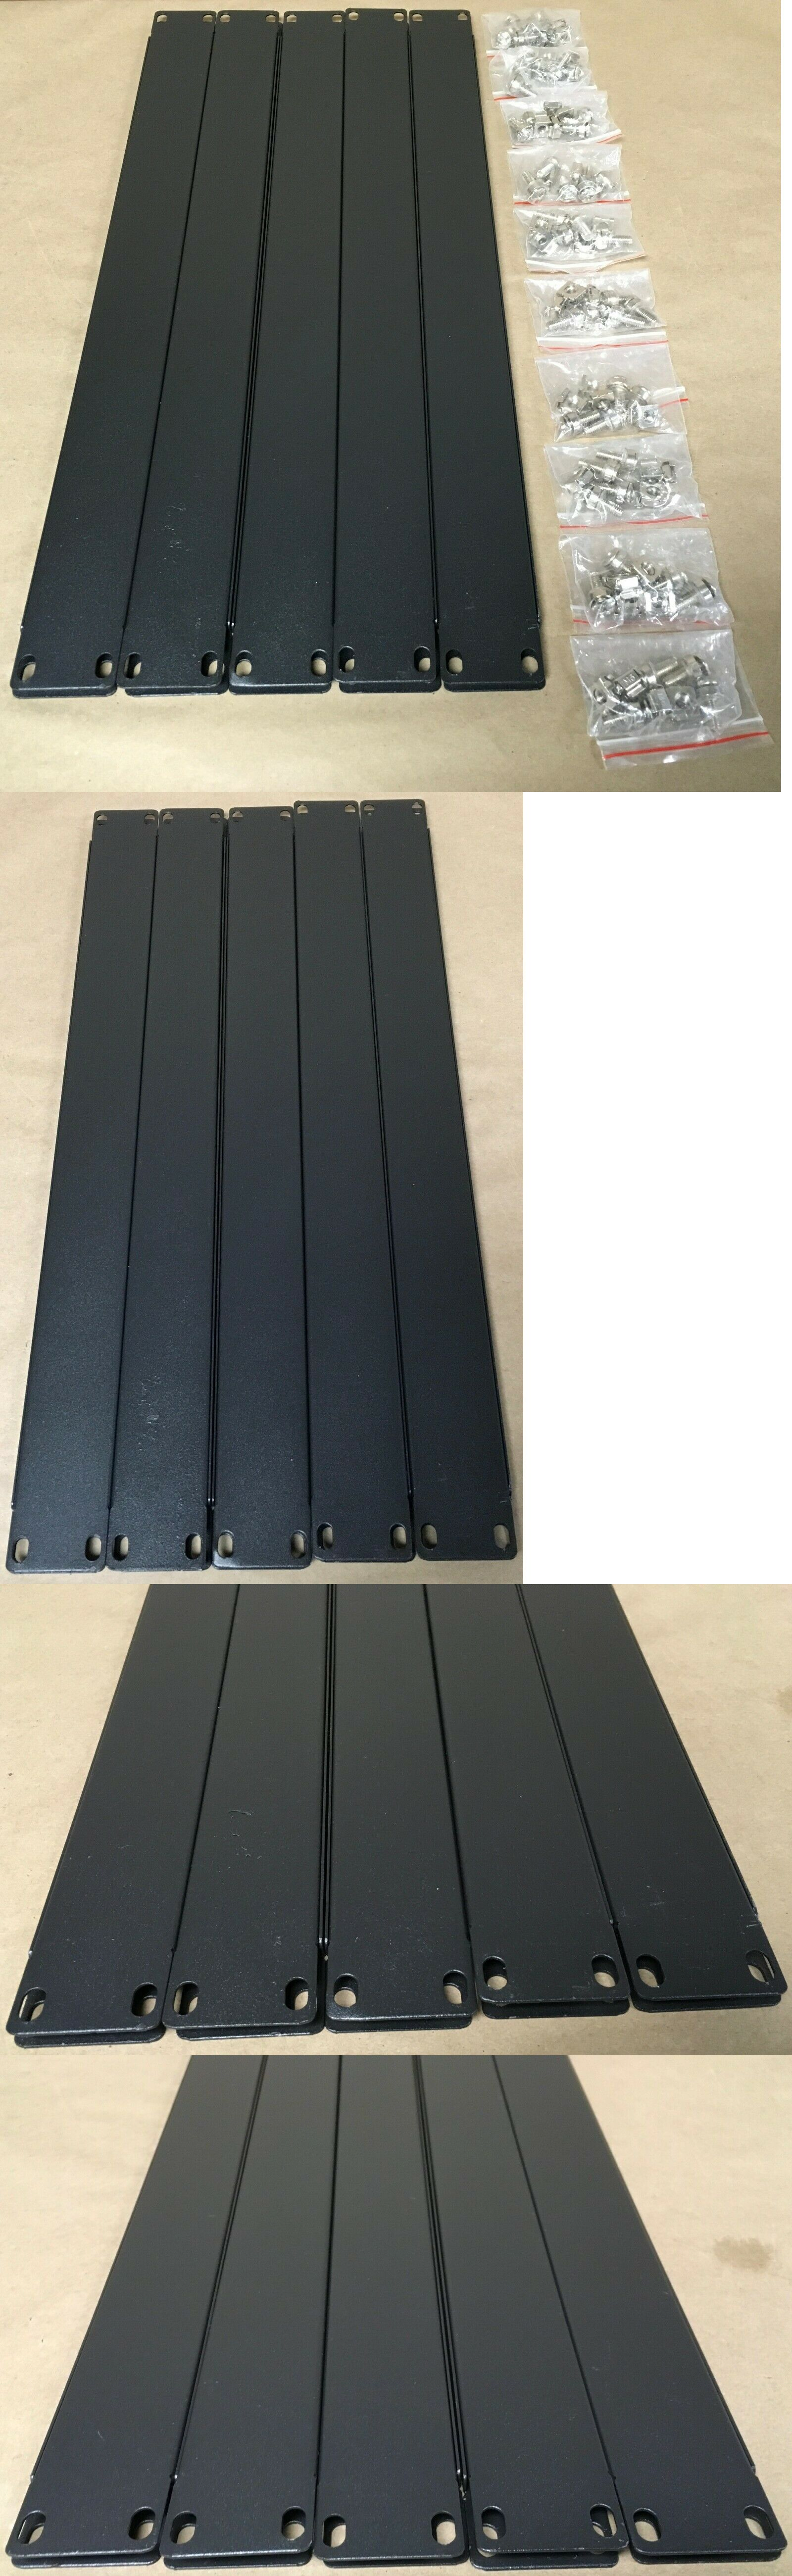 Rackmount Cabinets And Frames 51199 V7 Rack 1u Blank Panel For Unused Rack Space 10 Pack Black Rmblank1u10 1n Buy It Now Rack Paneling Wall Mount Rack